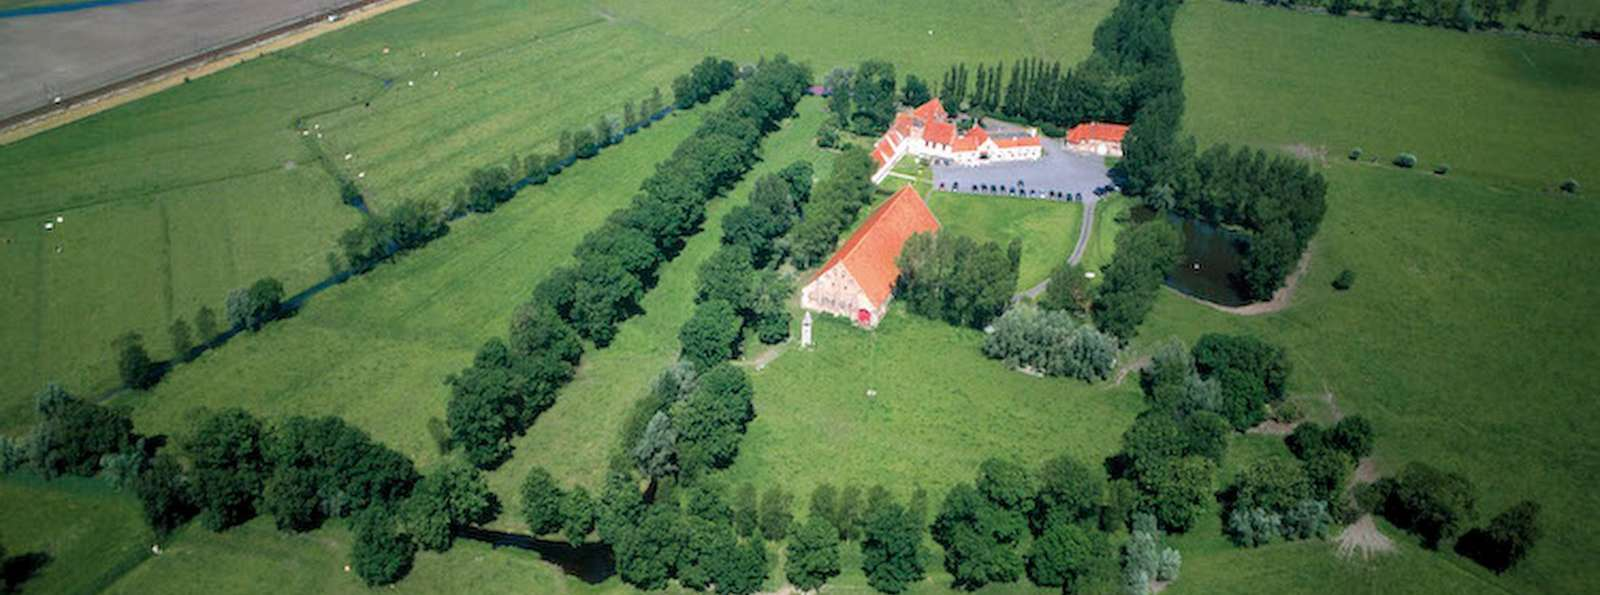 Hostellerie Hof Ter Doest - HostellerieHofTerDoest_Airview.JPG